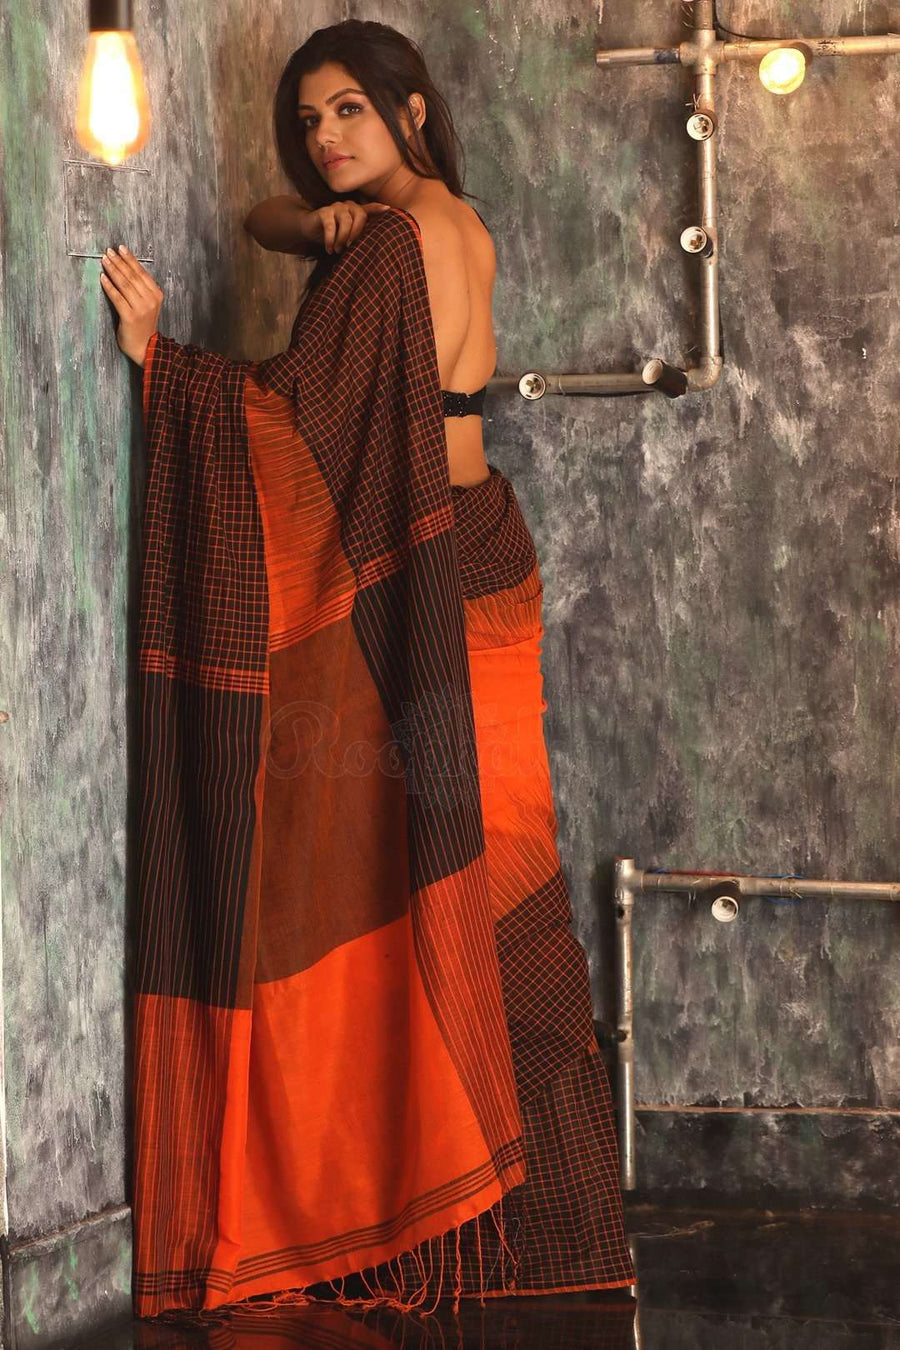 Orange Pure Cotton Saree With Checkered Border Cotton Threads Of India Roopkatha - A Story of Art